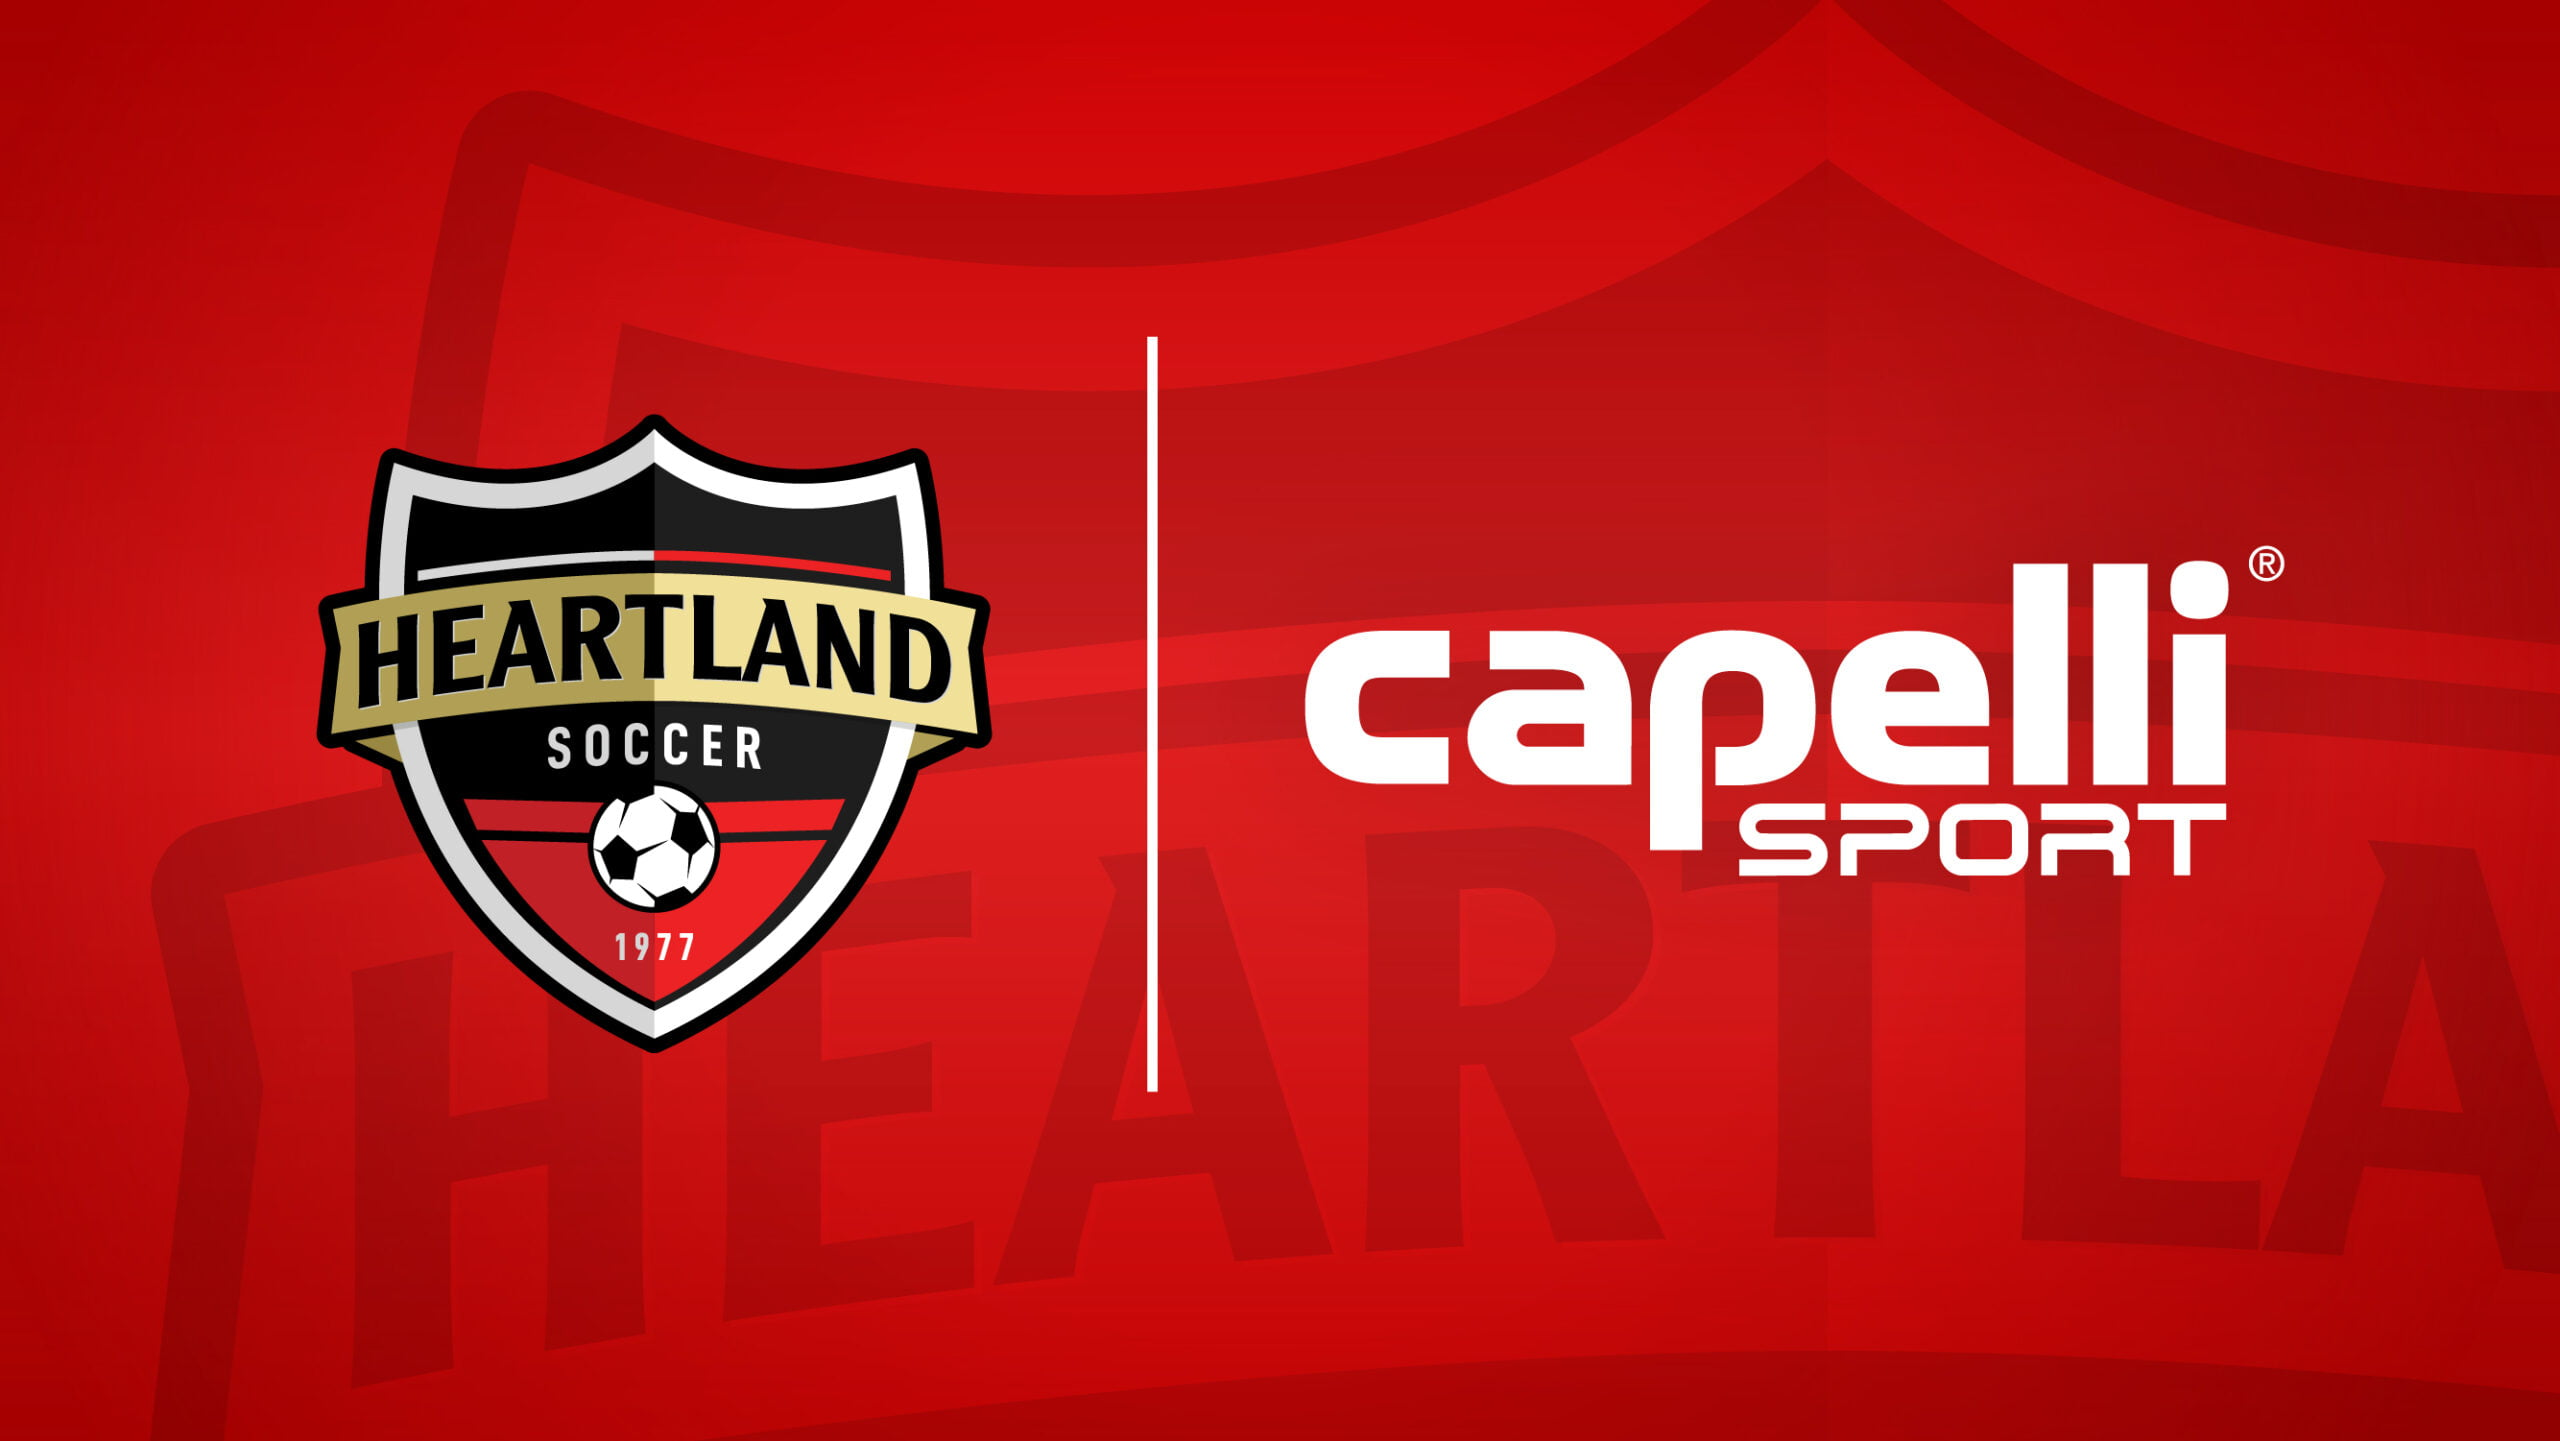 Capelli Sport Becomes the Official and Exclusive Referee Kit Provider of Heartland Soccer